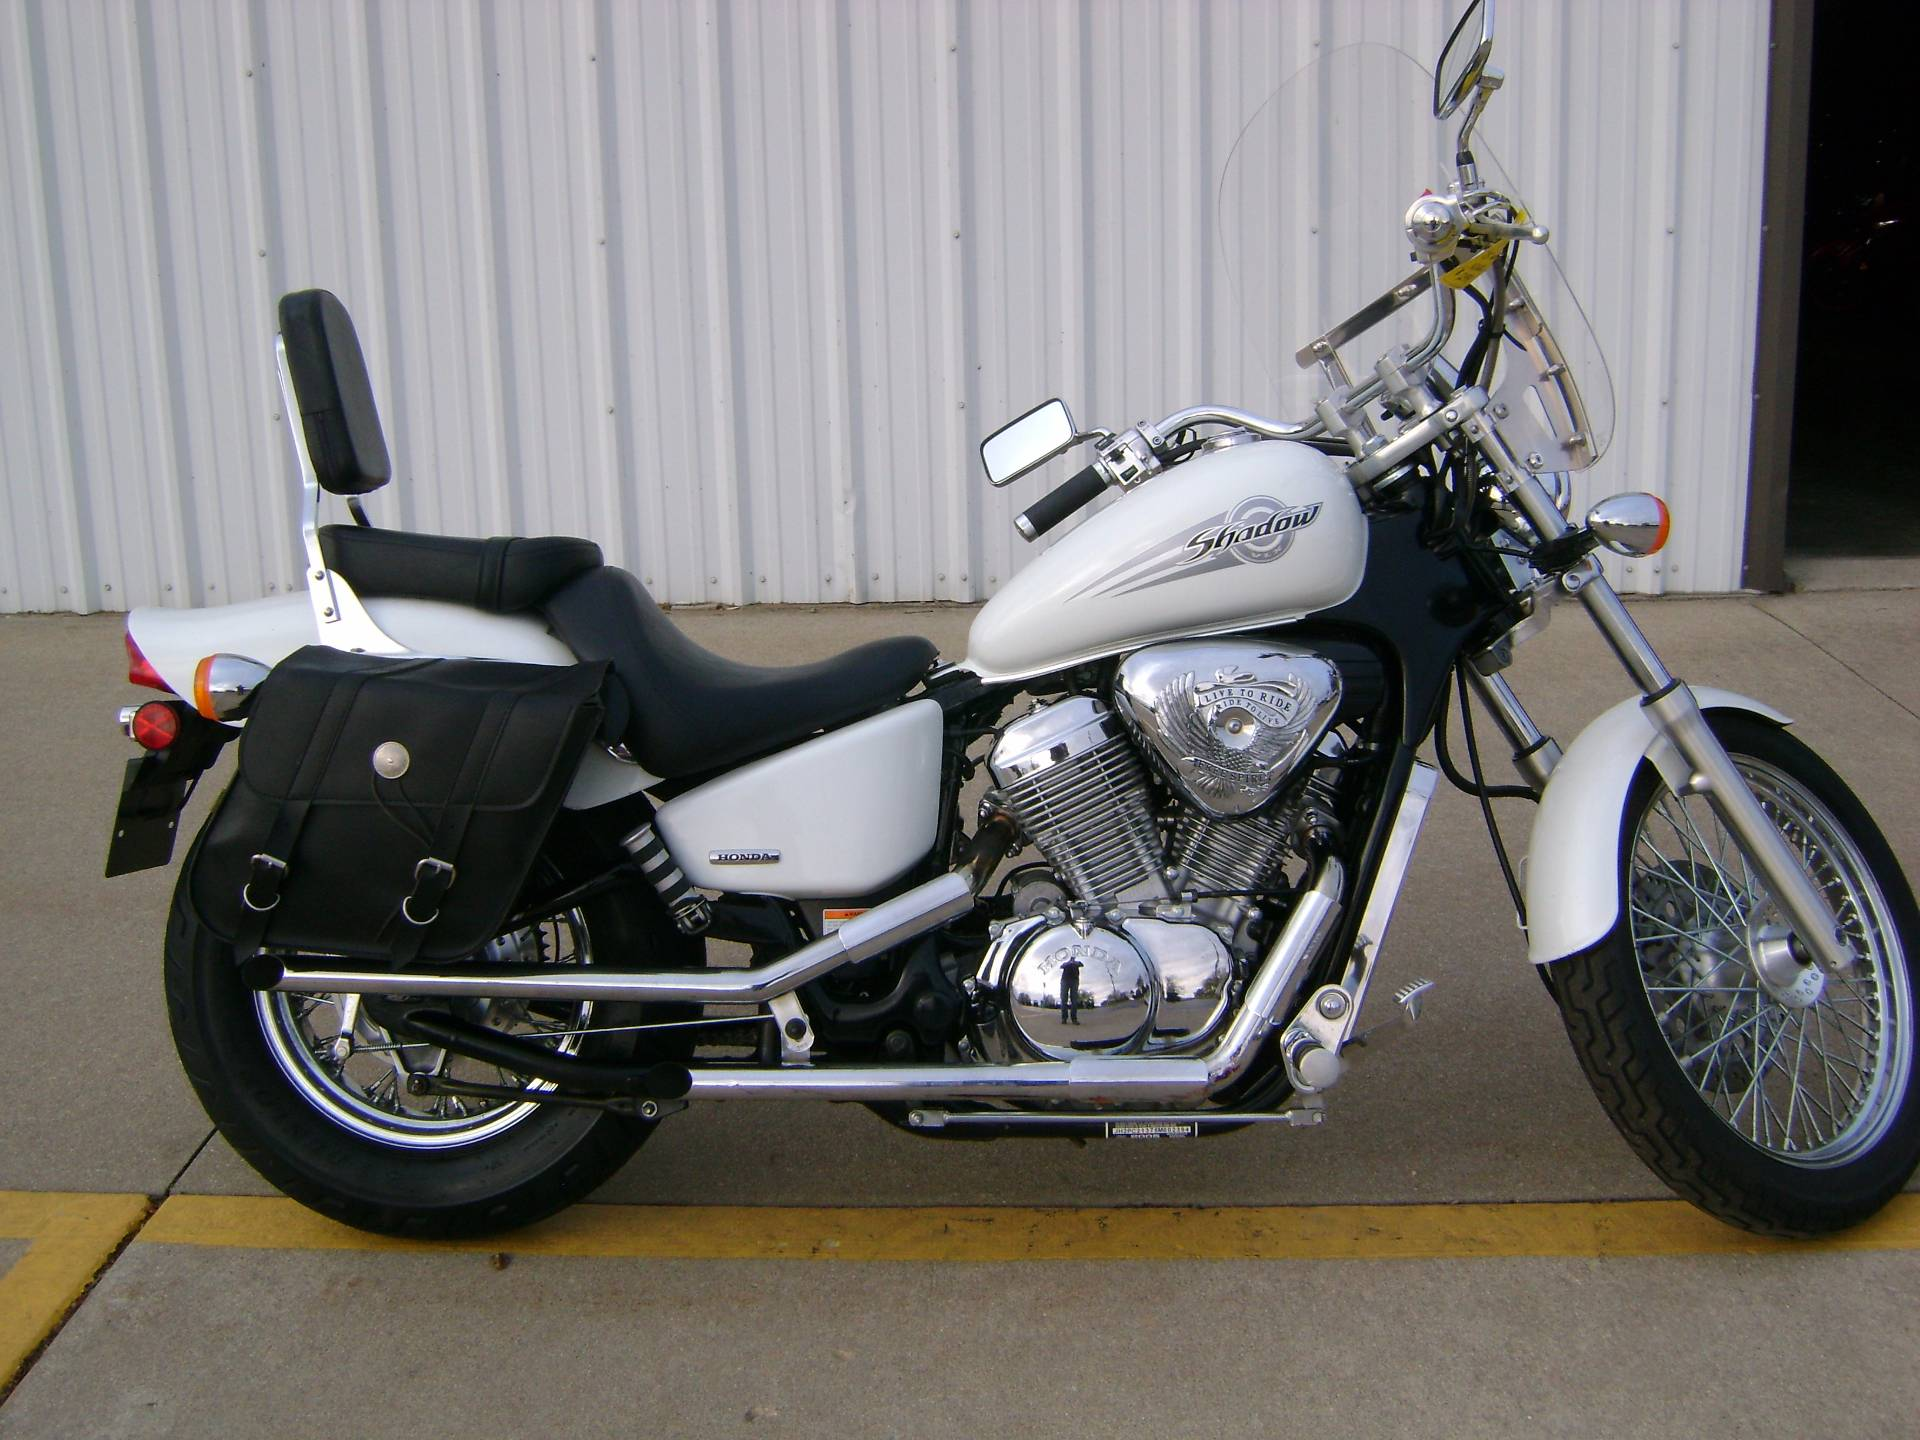 used 2005 honda shadow vlx 600 motorcycles in freeport il. Black Bedroom Furniture Sets. Home Design Ideas